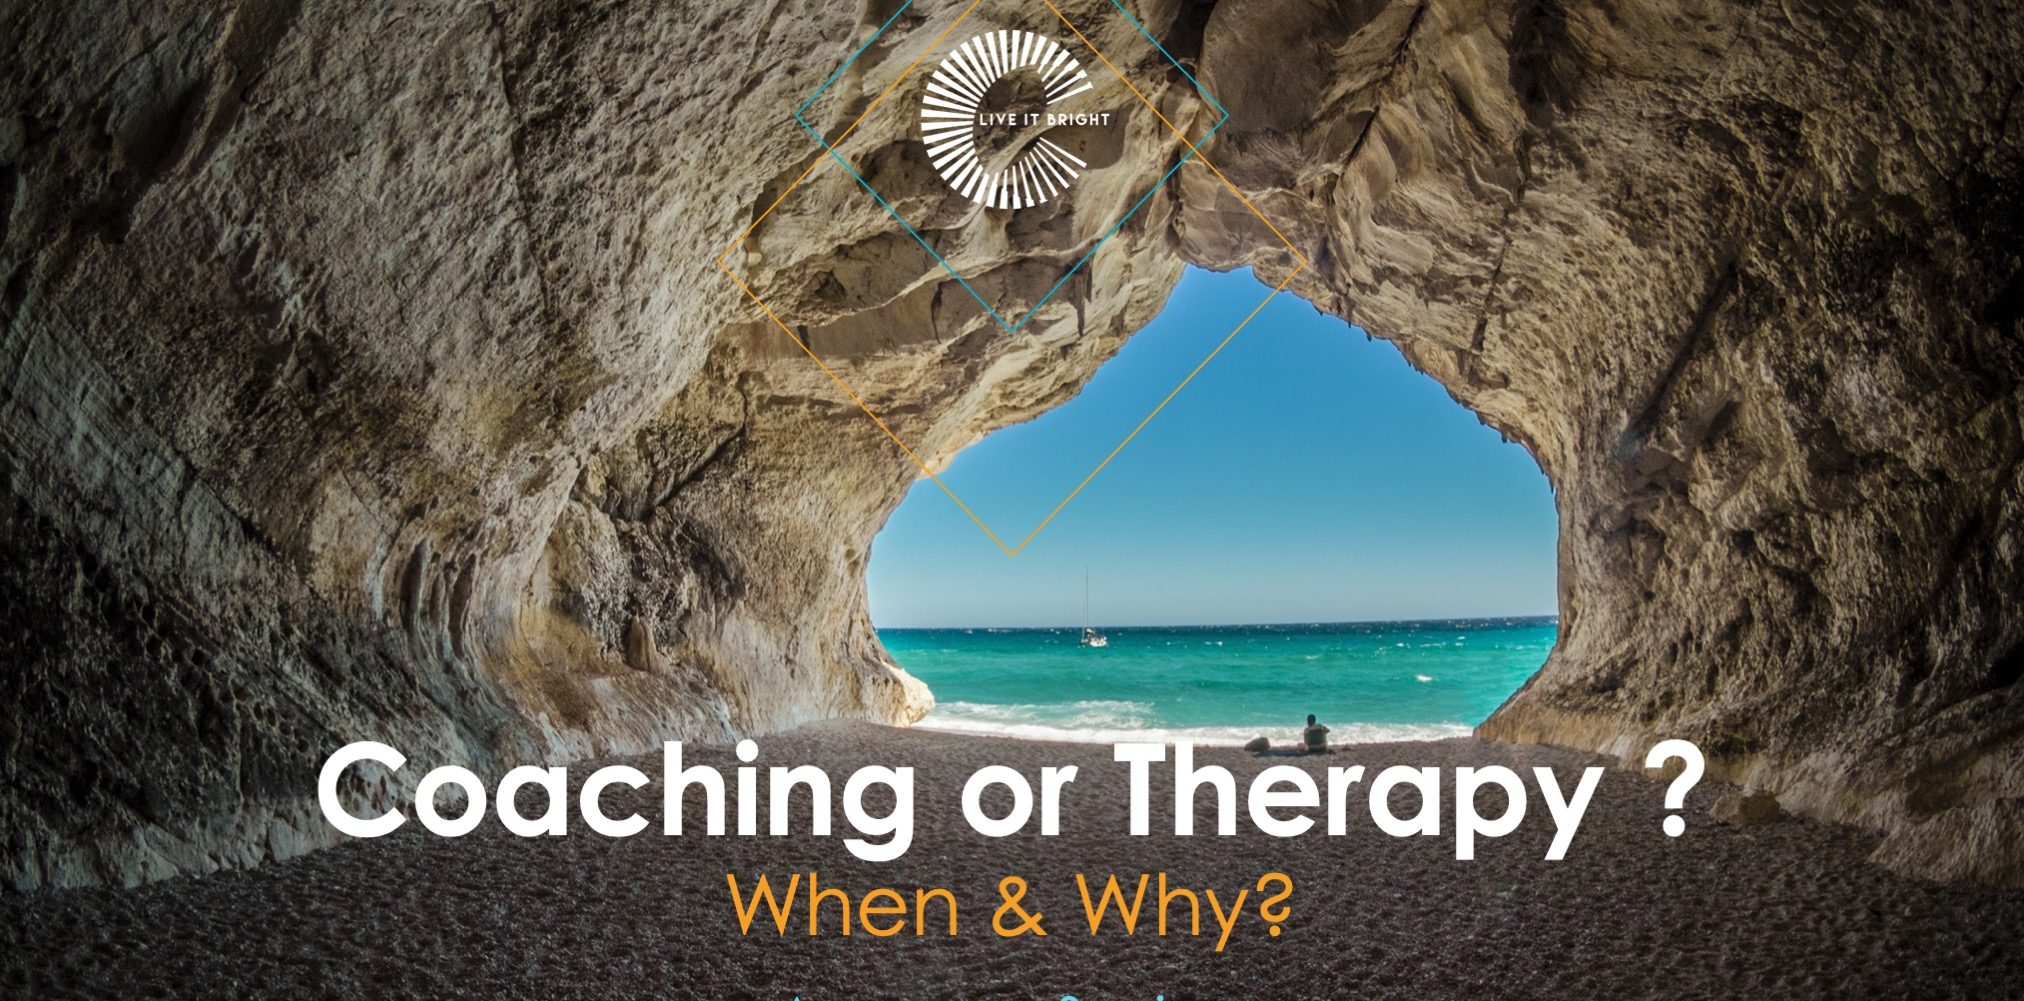 Coaching or Therapies? Why, and when?